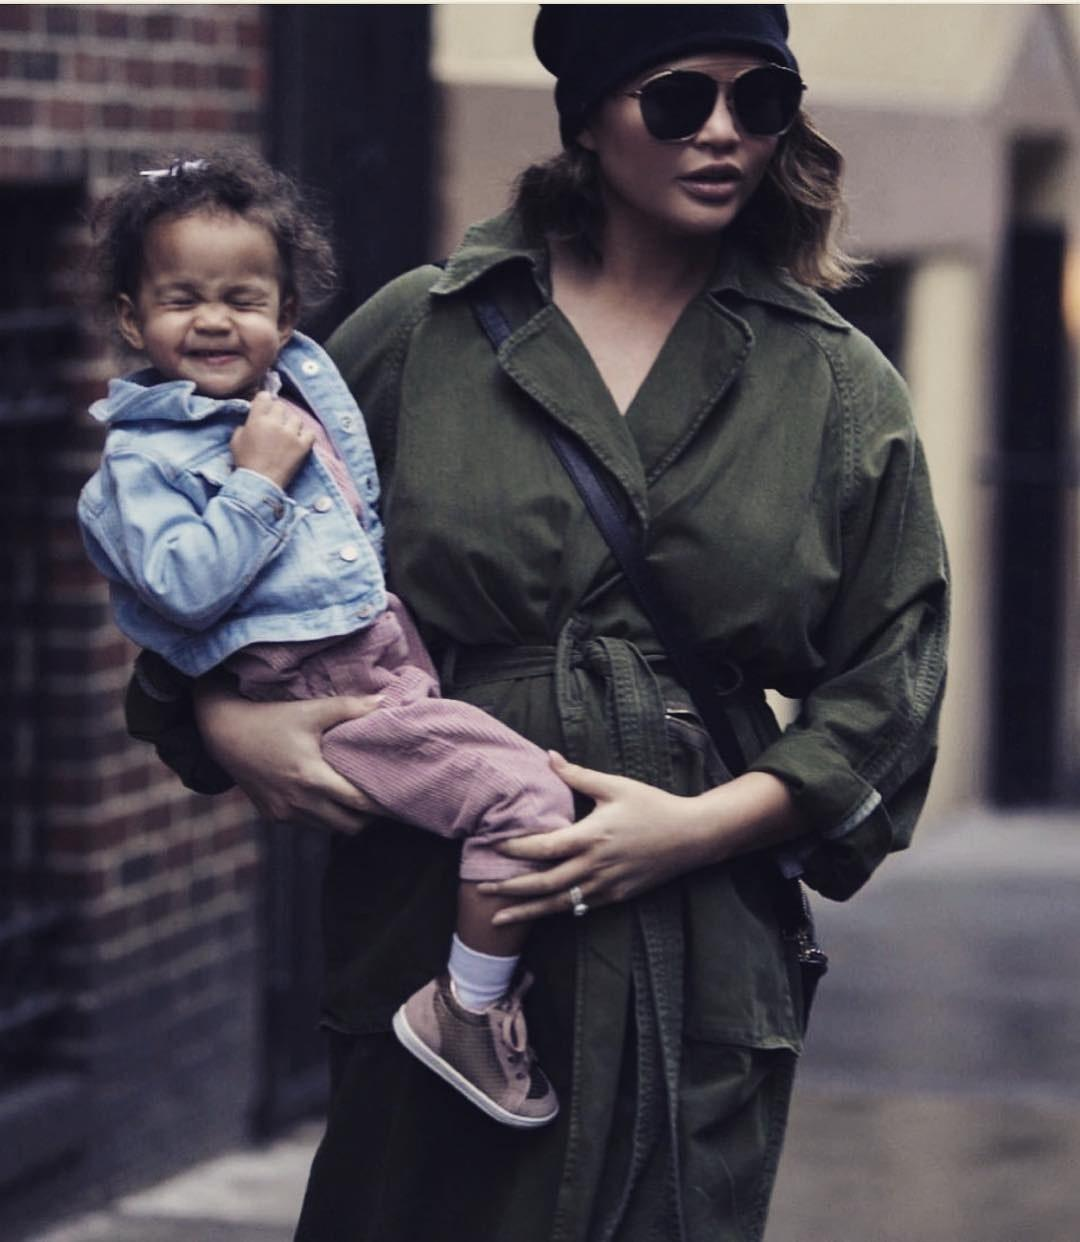 """<div class=""""caption""""> <a href=""""https://www.wmagazine.com/topic/chrissy-teigen?mbid=synd_yahoo_rss"""" rel=""""nofollow noopener"""" target=""""_blank"""" data-ylk=""""slk:Chrissy Teigen"""" class=""""link rapid-noclick-resp"""">Chrissy Teigen</a> and <a href=""""https://www.wmagazine.com/topic/john-legend?mbid=synd_yahoo_rss"""" rel=""""nofollow noopener"""" target=""""_blank"""" data-ylk=""""slk:John Legend"""" class=""""link rapid-noclick-resp"""">John Legend</a>'s daughter Luna has been omnipresent on Teigen's Instagram grid pretty much ever since she was born in 2016. The same will no doubt be true for the son whom Teigen's currently pregnant with. </div> <cite class=""""credit"""">Courtesy of <a href=""""https://www.instagram.com/chrissyteigen/"""" rel=""""nofollow noopener"""" target=""""_blank"""" data-ylk=""""slk:@chrissyteigen"""" class=""""link rapid-noclick-resp"""">@chrissyteigen</a></cite>"""